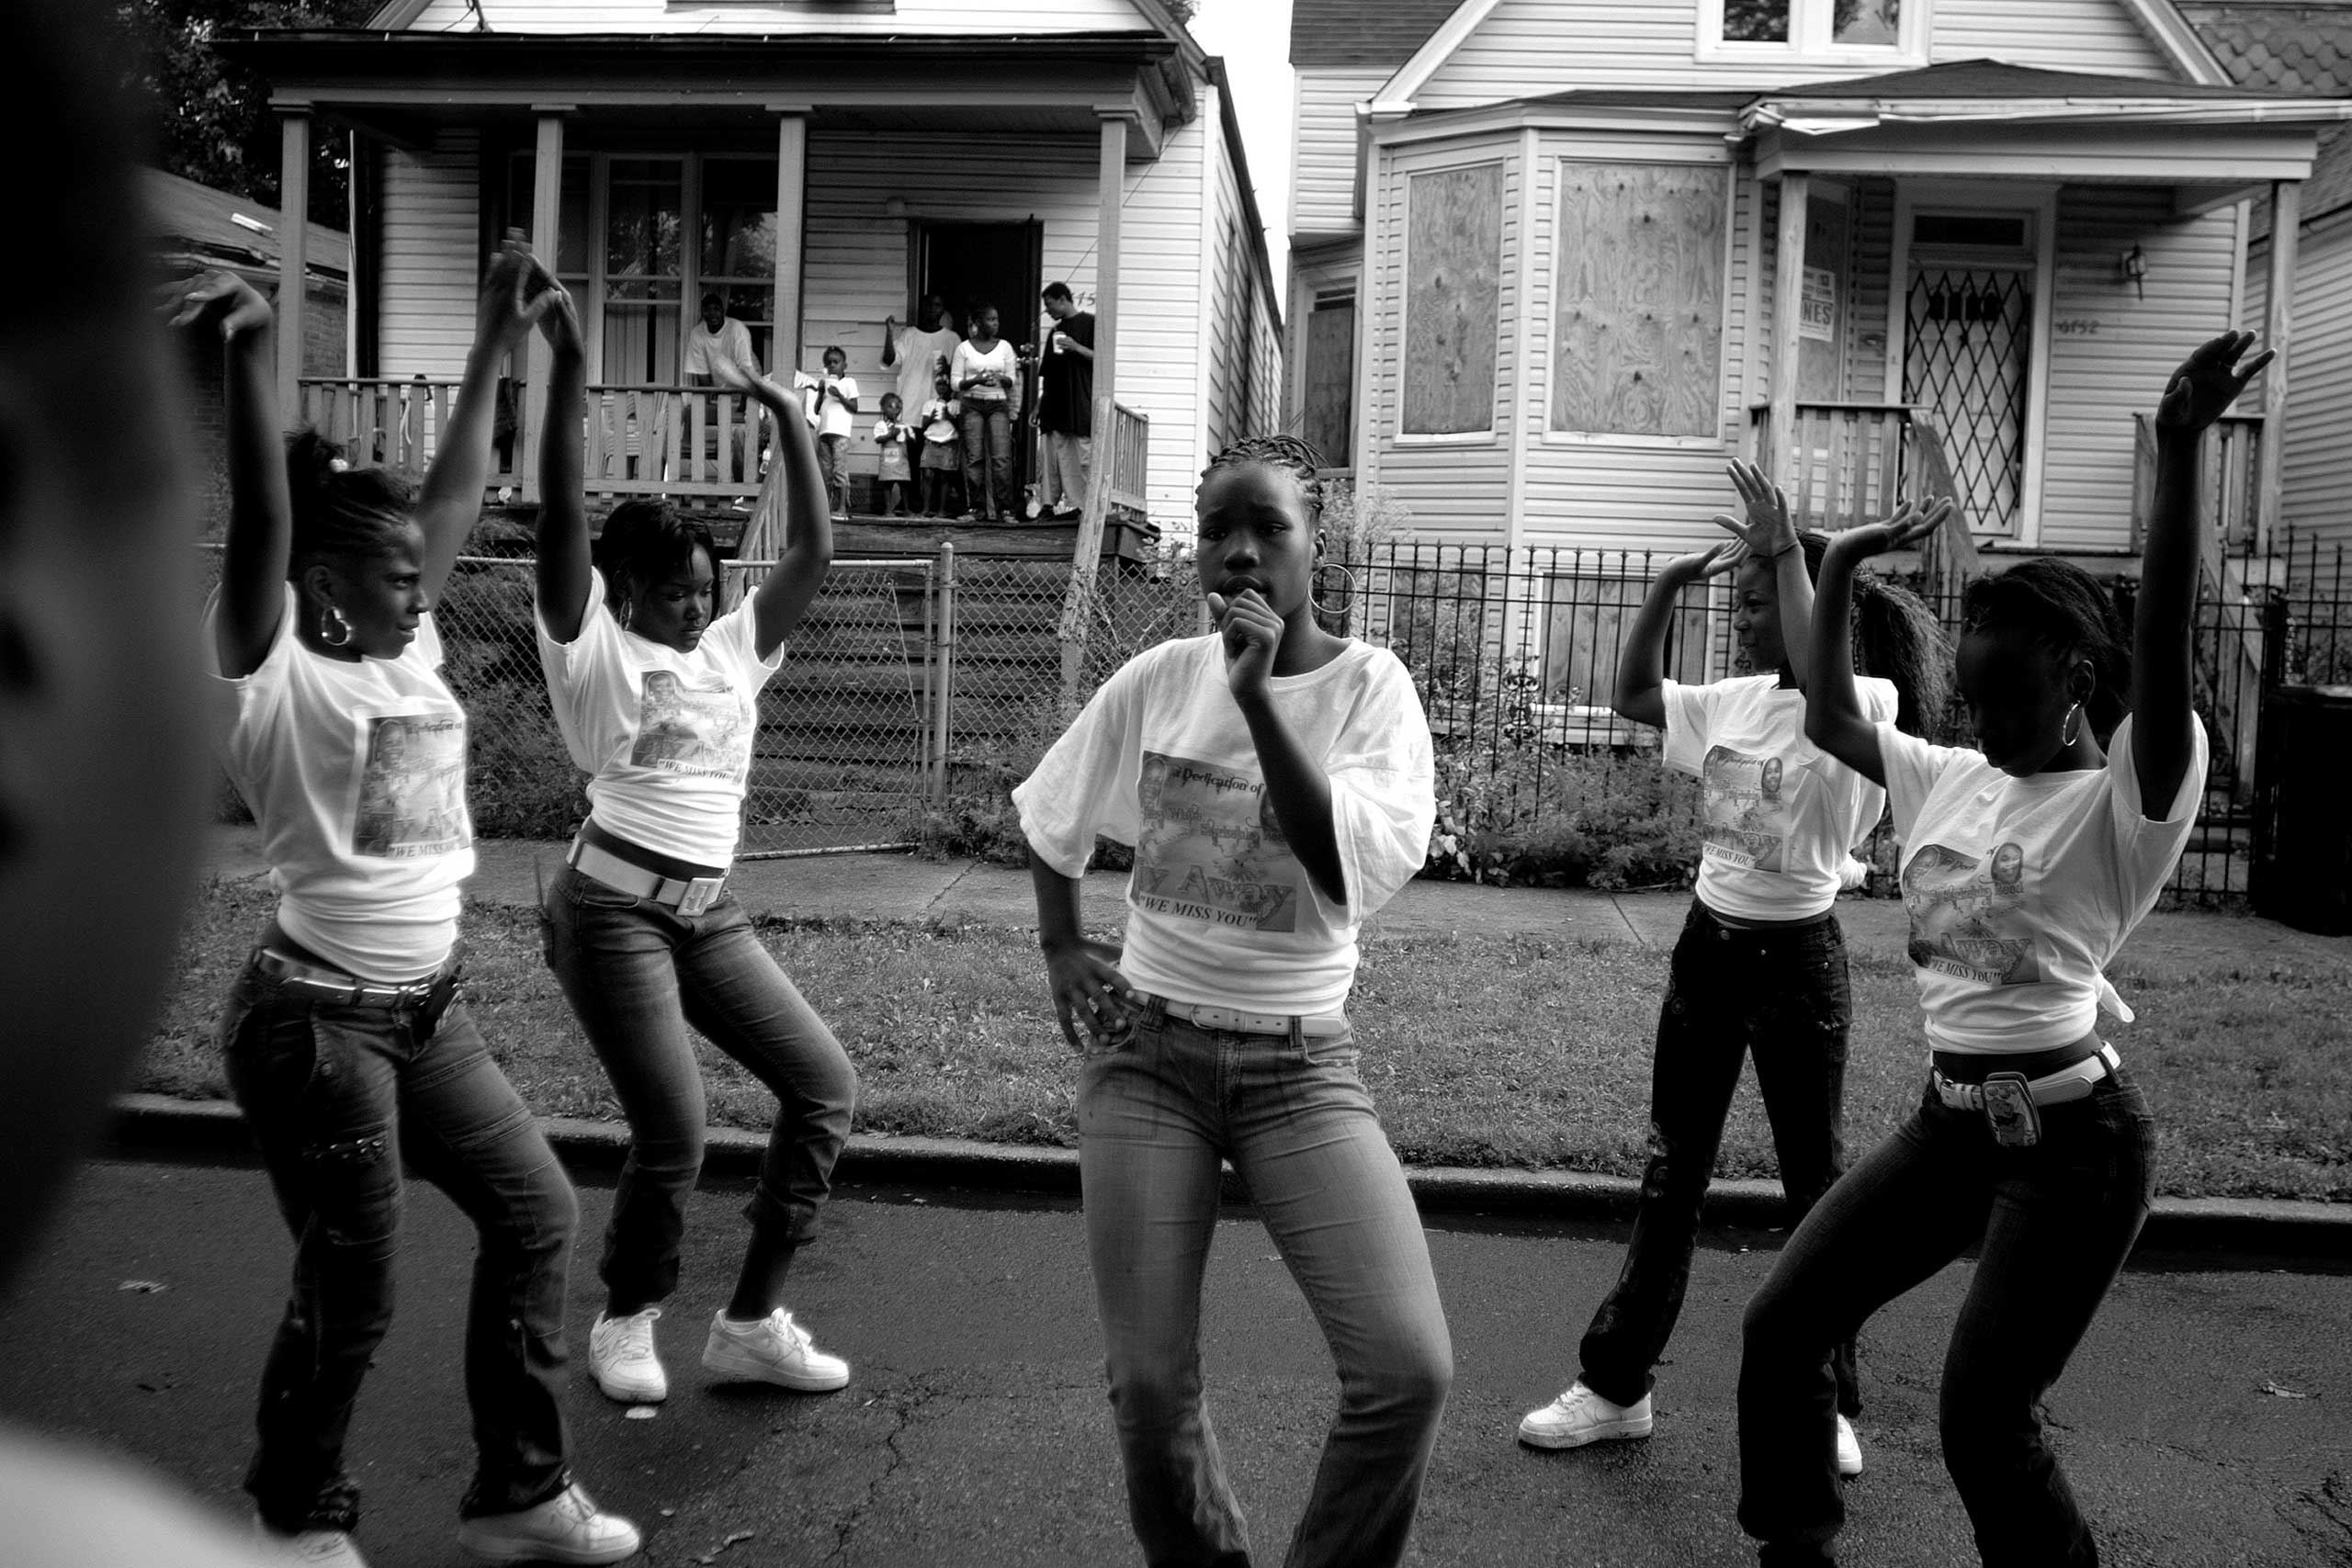 Girls in the Englewood neighborhood on Chicago's South Side attend a block party to celebrate the lives of Starkeisha Reed, 14, and Siretha White, 10. Starkeisha and Siretha were killed days apart in March 2006. The girls' mothers were friends, and both grew up on Honore Street, where the celebration took place. Englewood, Chicago, 2008.